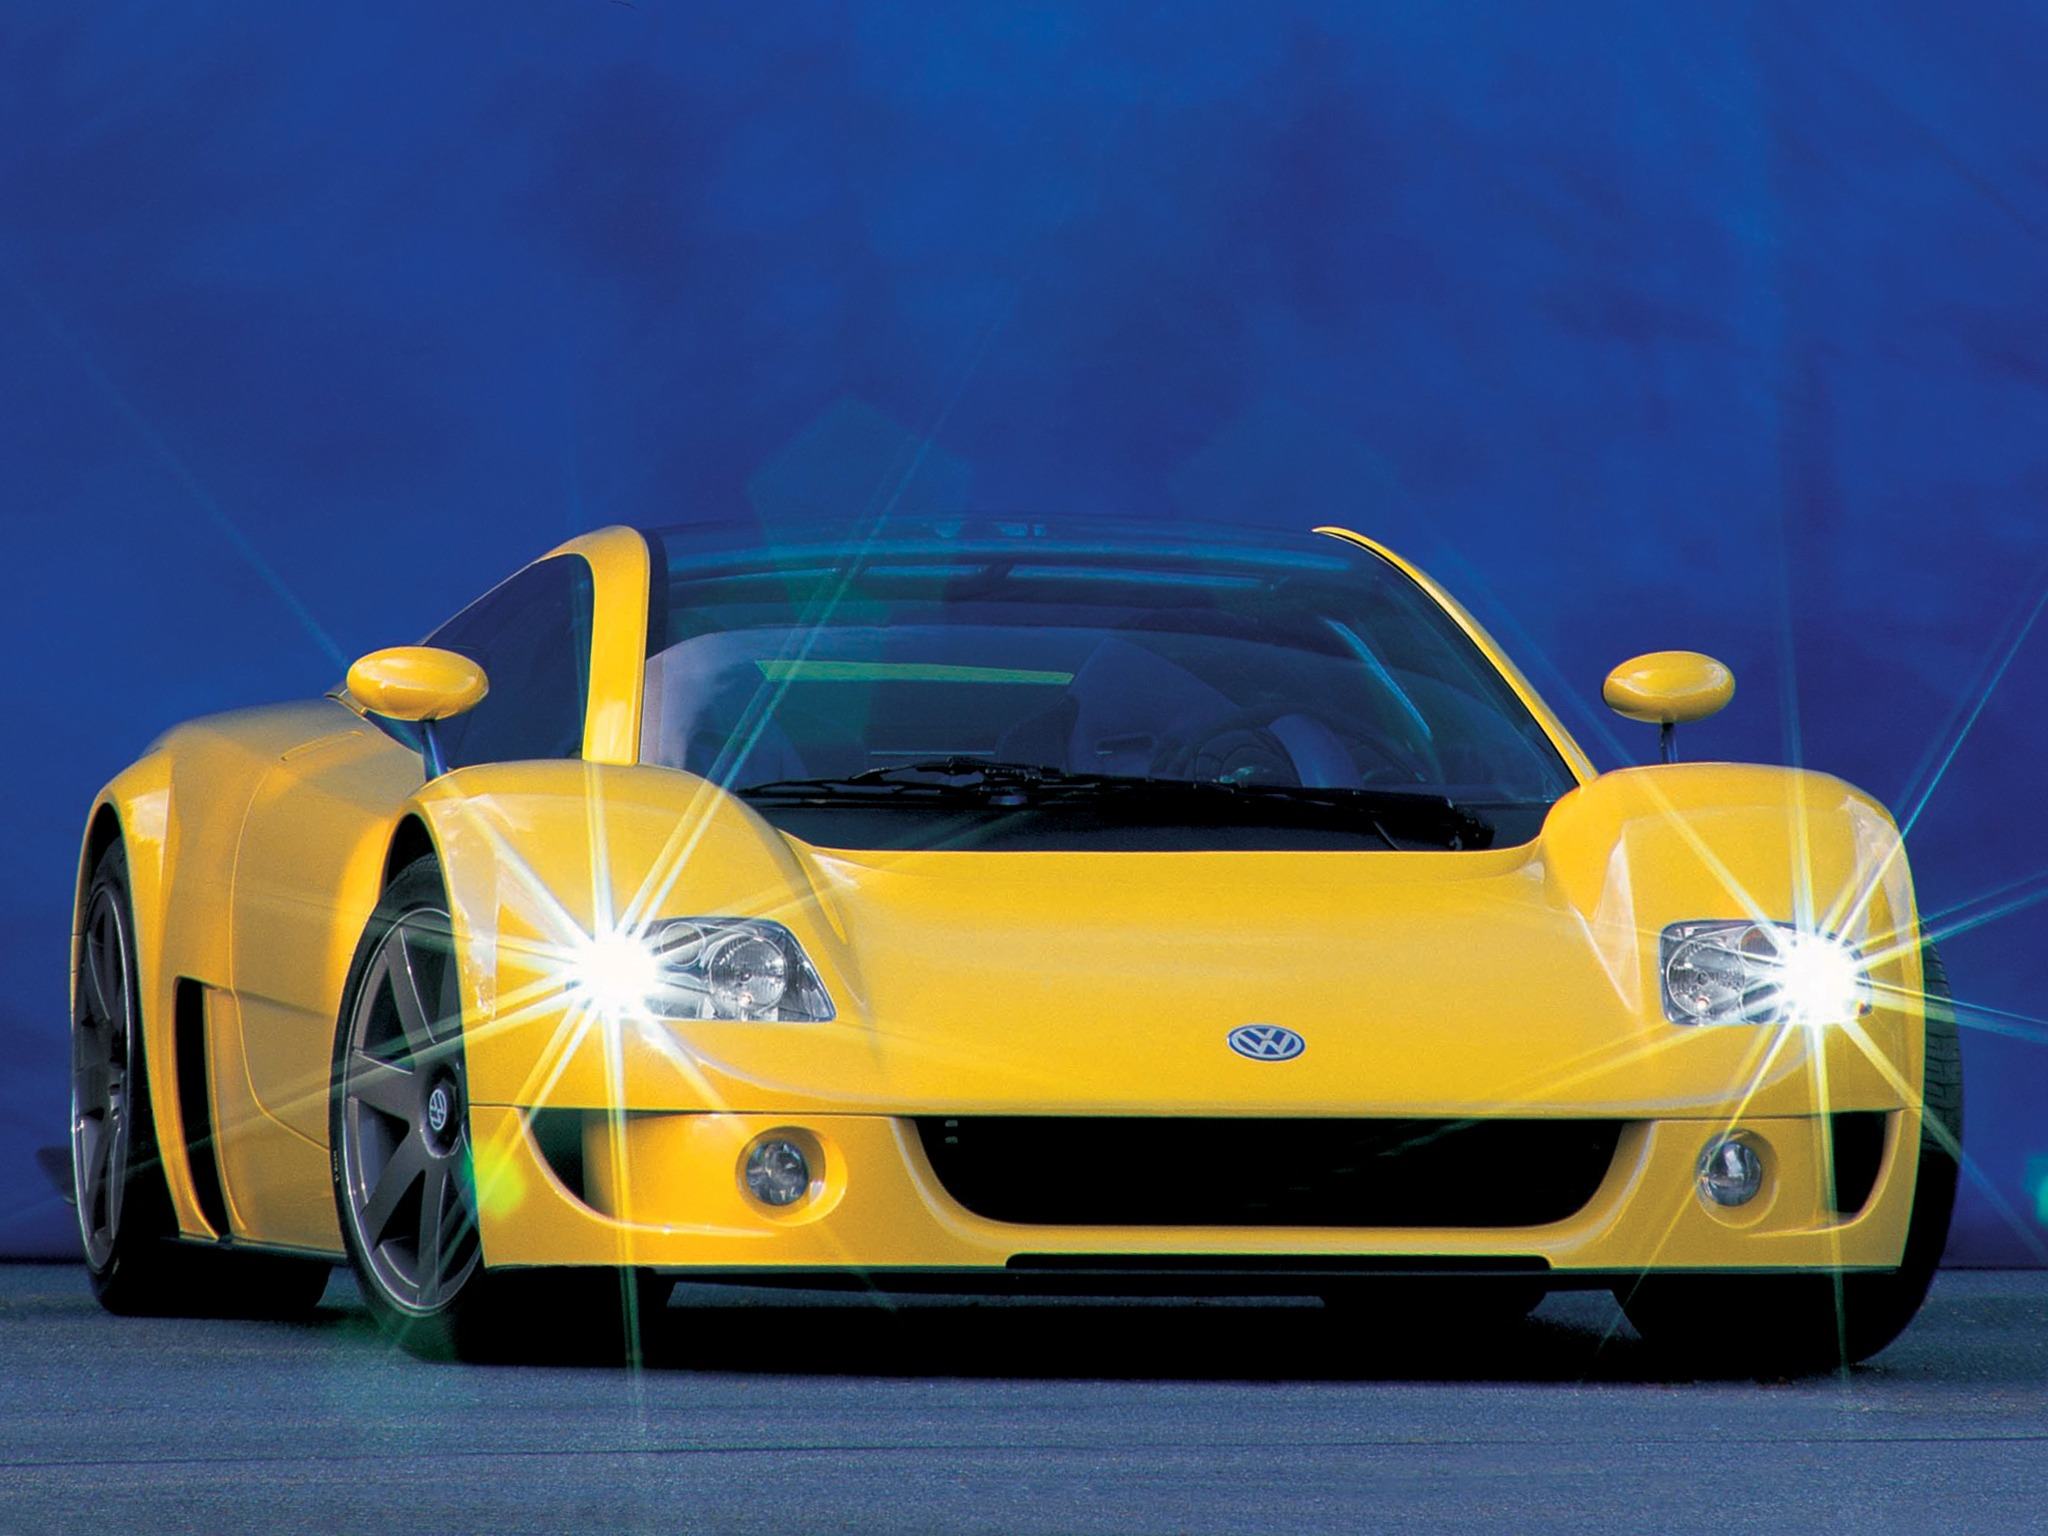 Top 10 Fastest Cars >> Volkswagen W12 Syncro Concept (1997) - Old Concept Cars